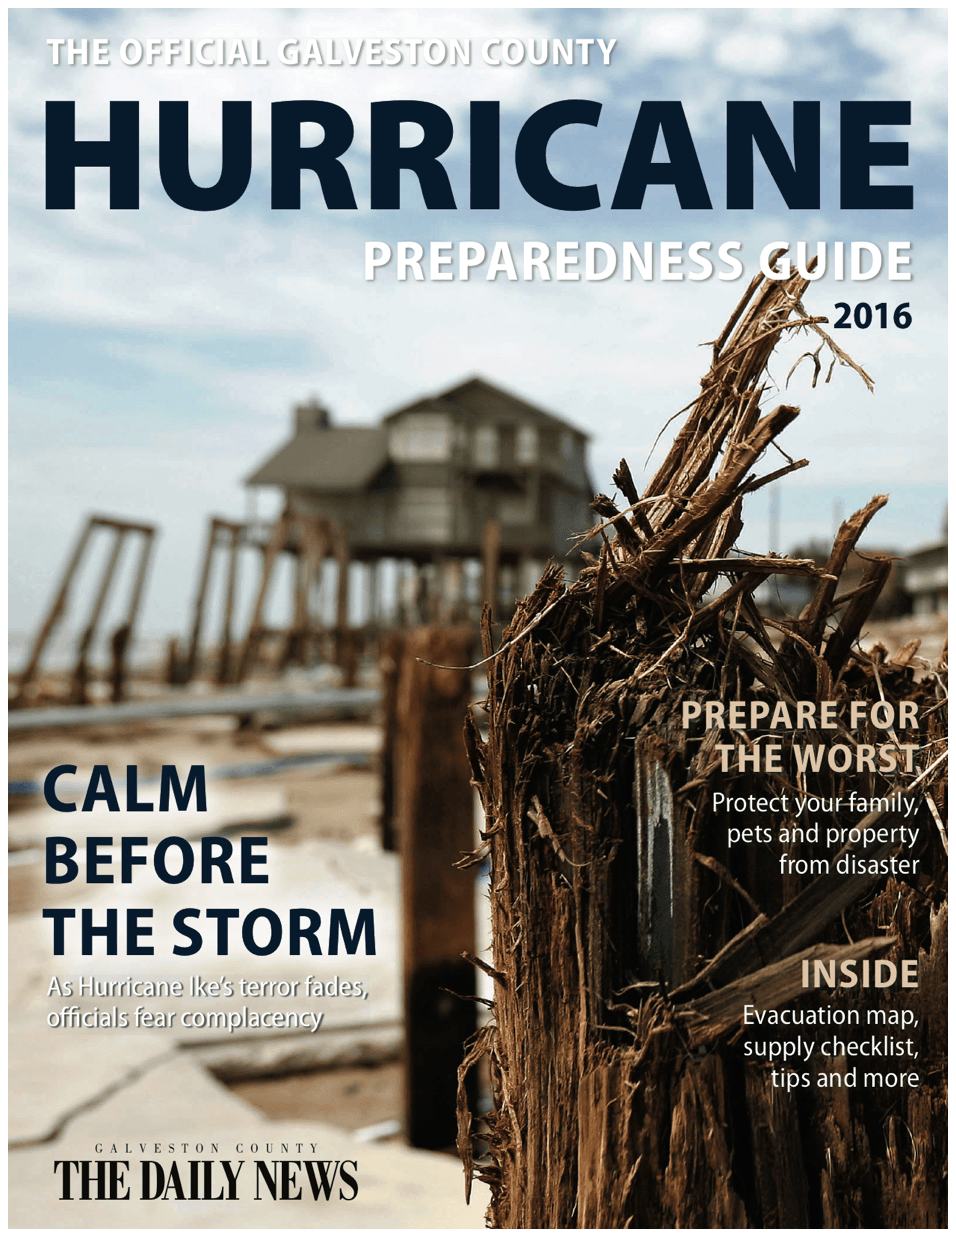 2016 Hurricane Preparedness Guide